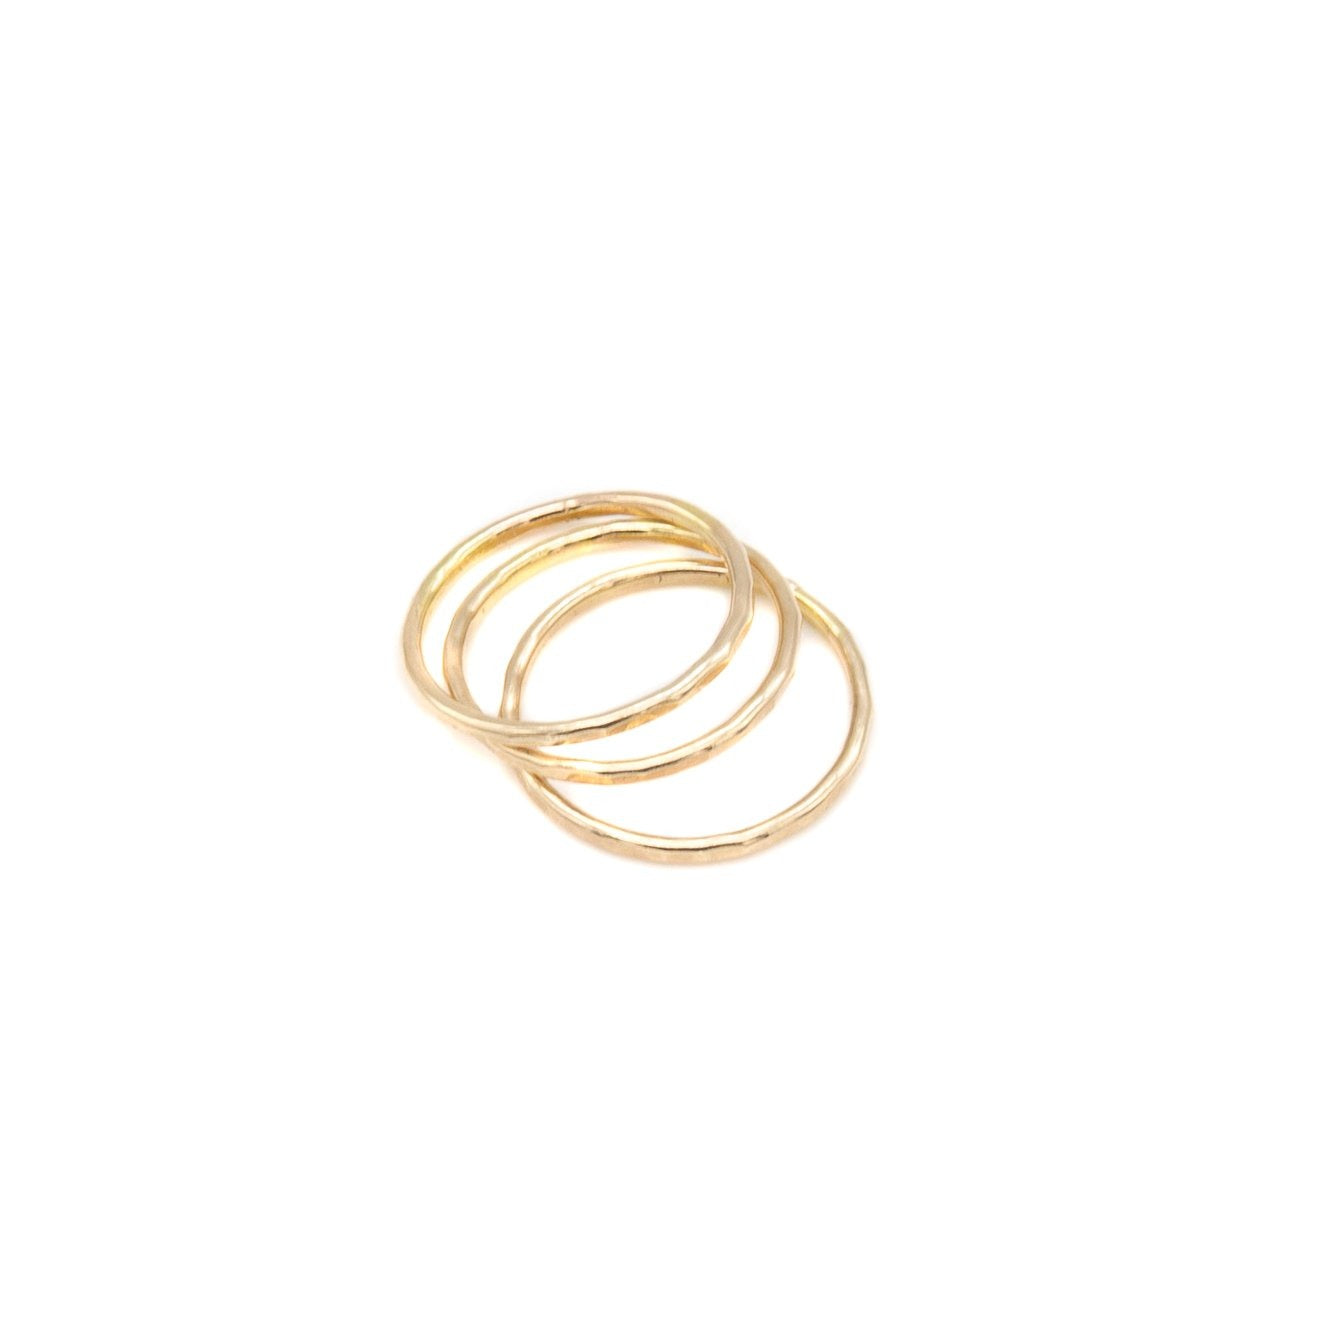 Chic Stackable Ring, 14k Gold Fill